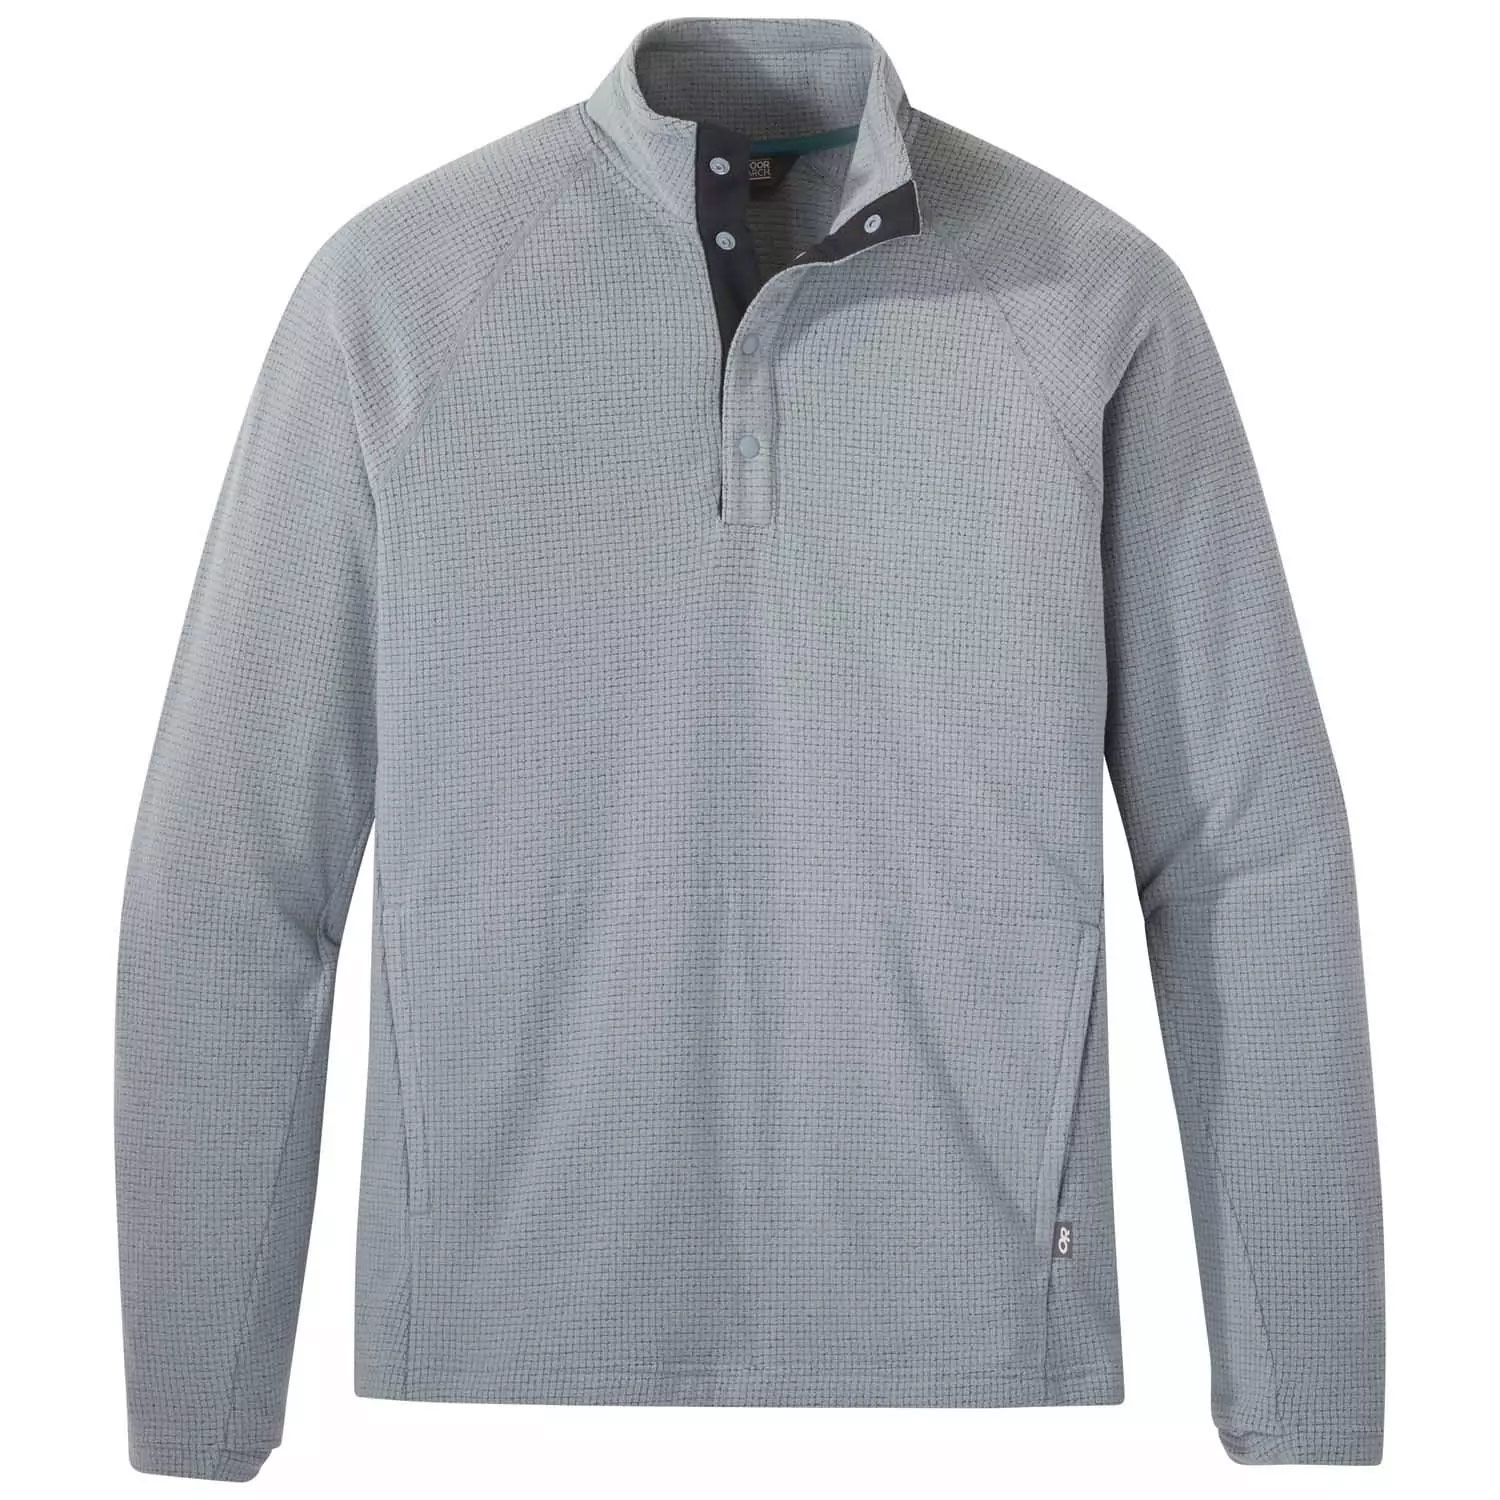 TRAIL MIX SNAP PULLOVER - MEN'